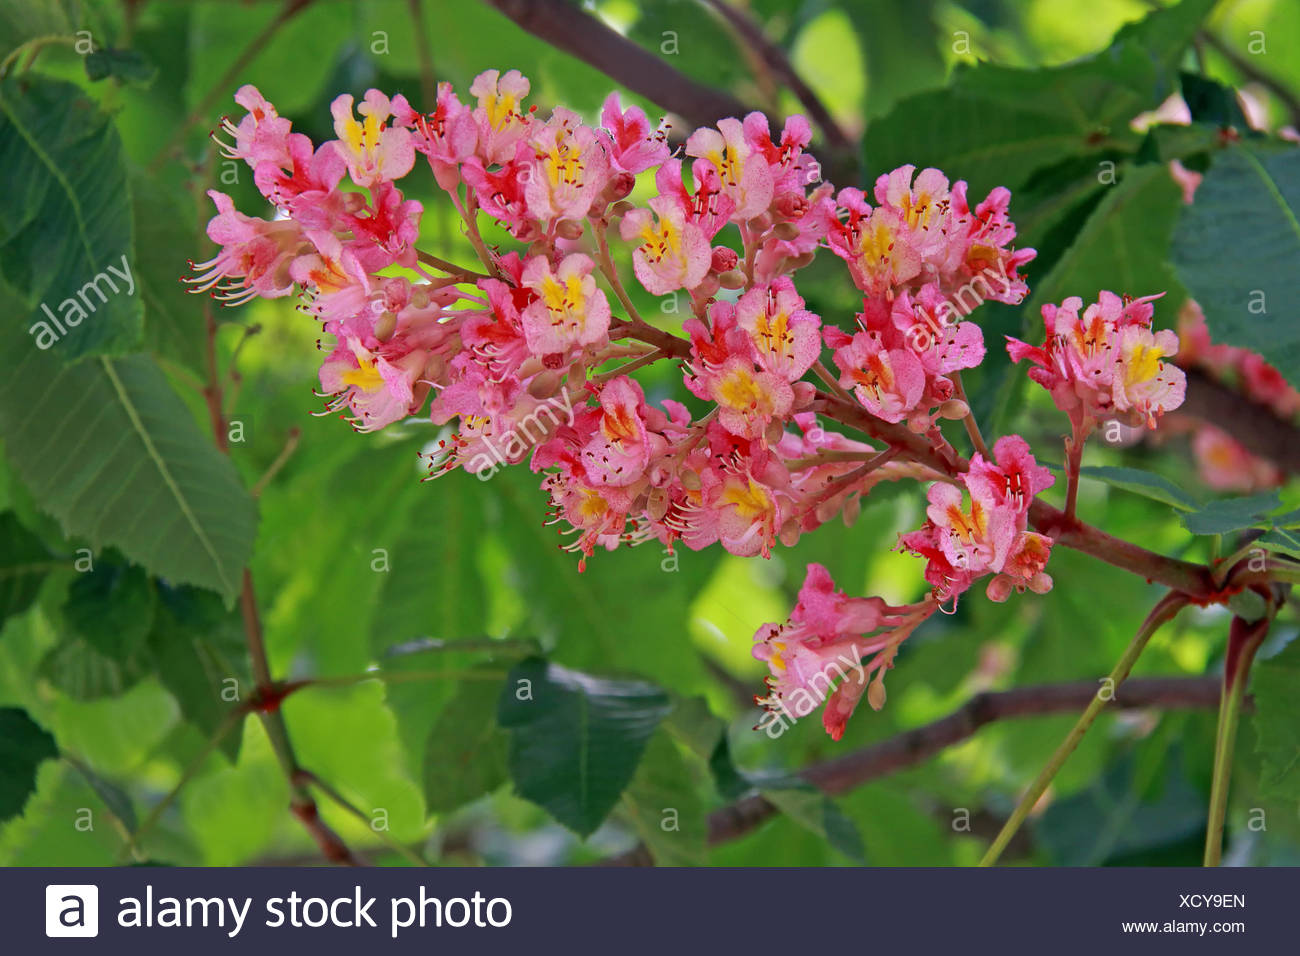 red horse chestnut aesculus pavia Stock Photo